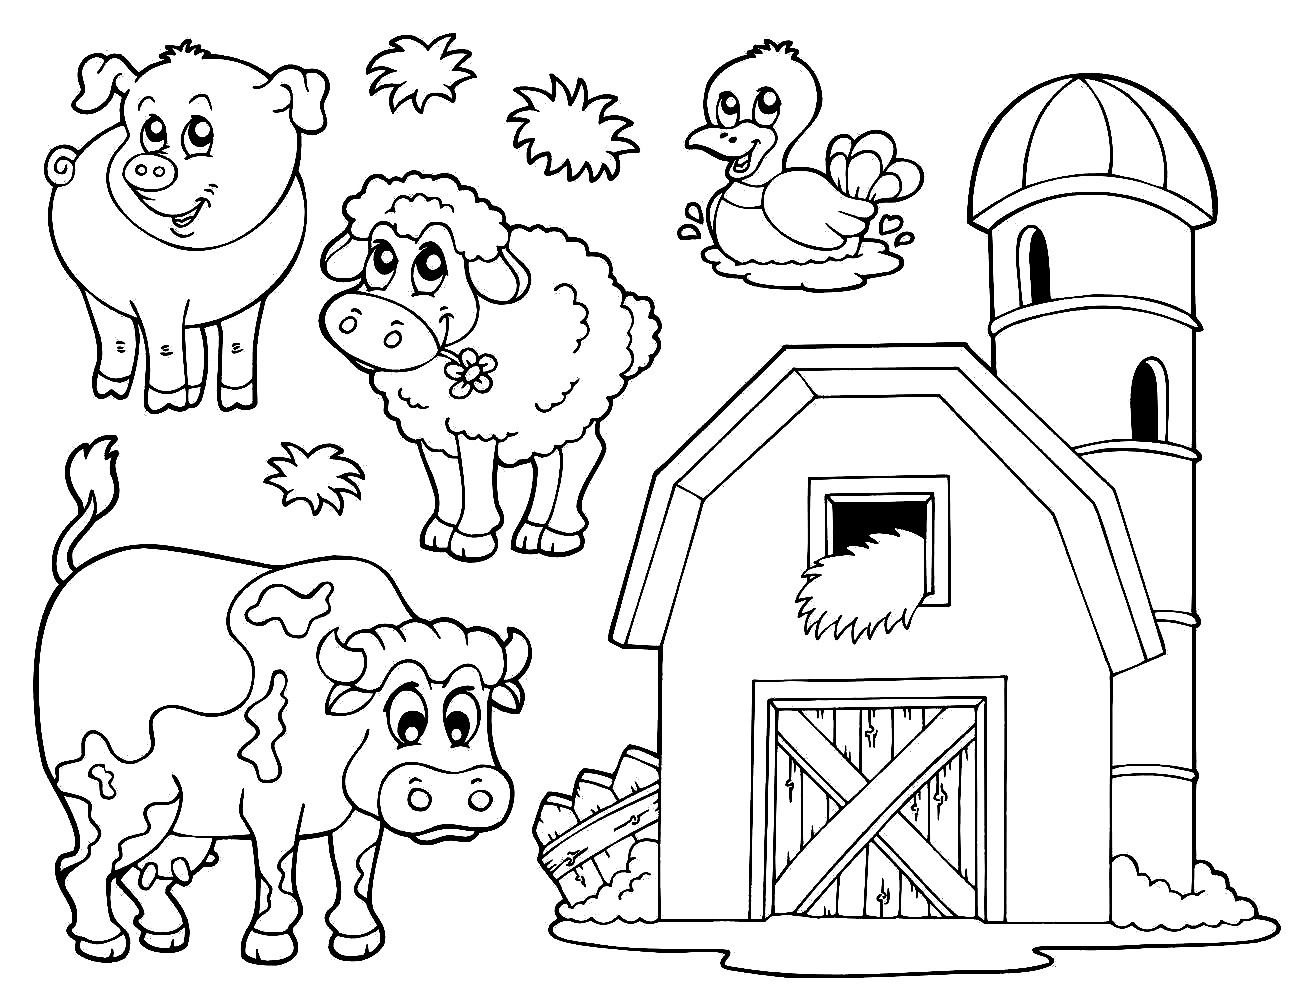 Printable Coloring Pages Of Farm Animals Farm Coloring Pages